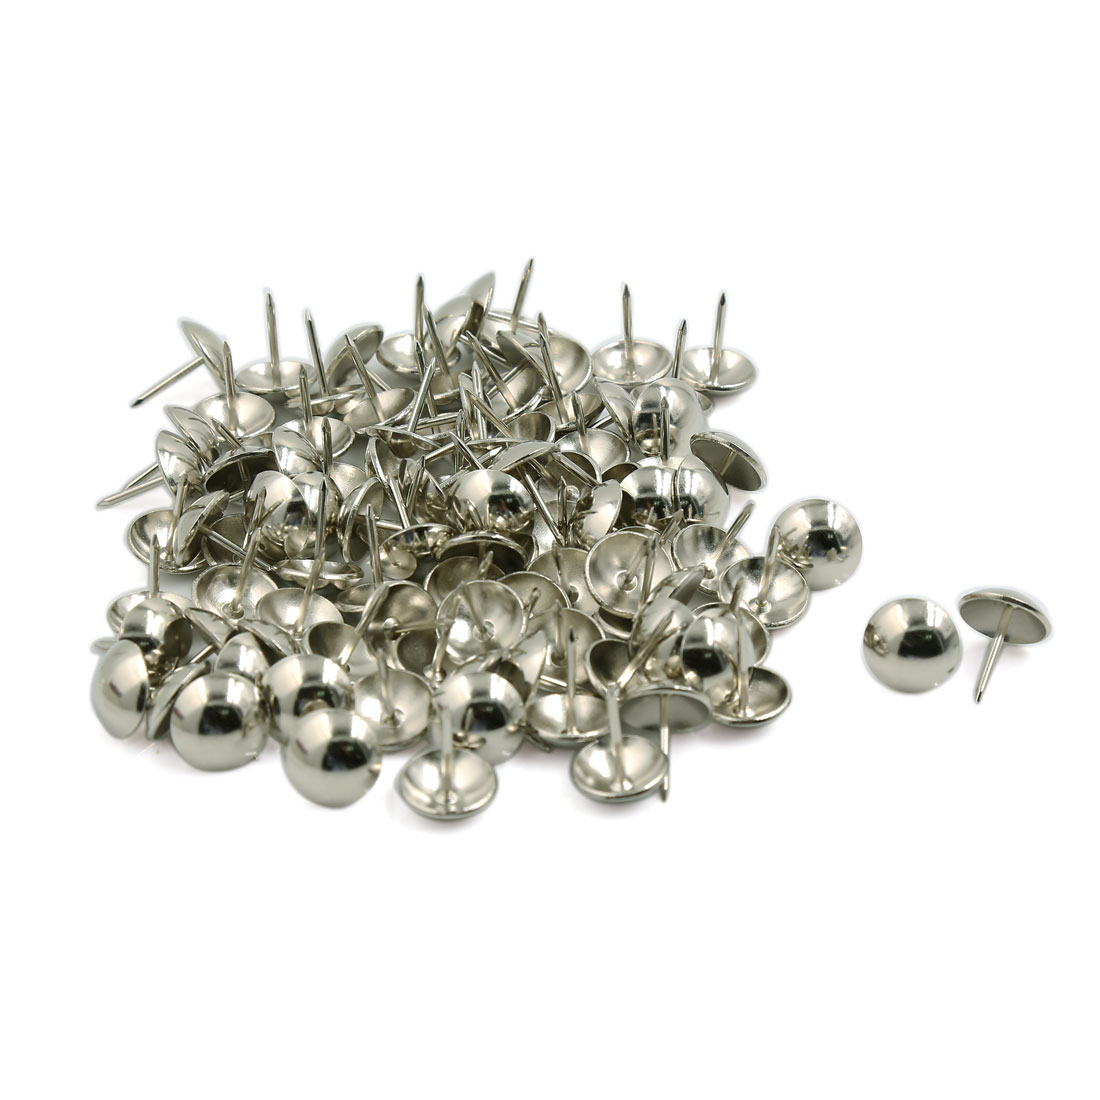 Unique Bargains 100 Pcs Home/Office Board Map Push Pins Thumbtacks w Steel Point Silver Tone